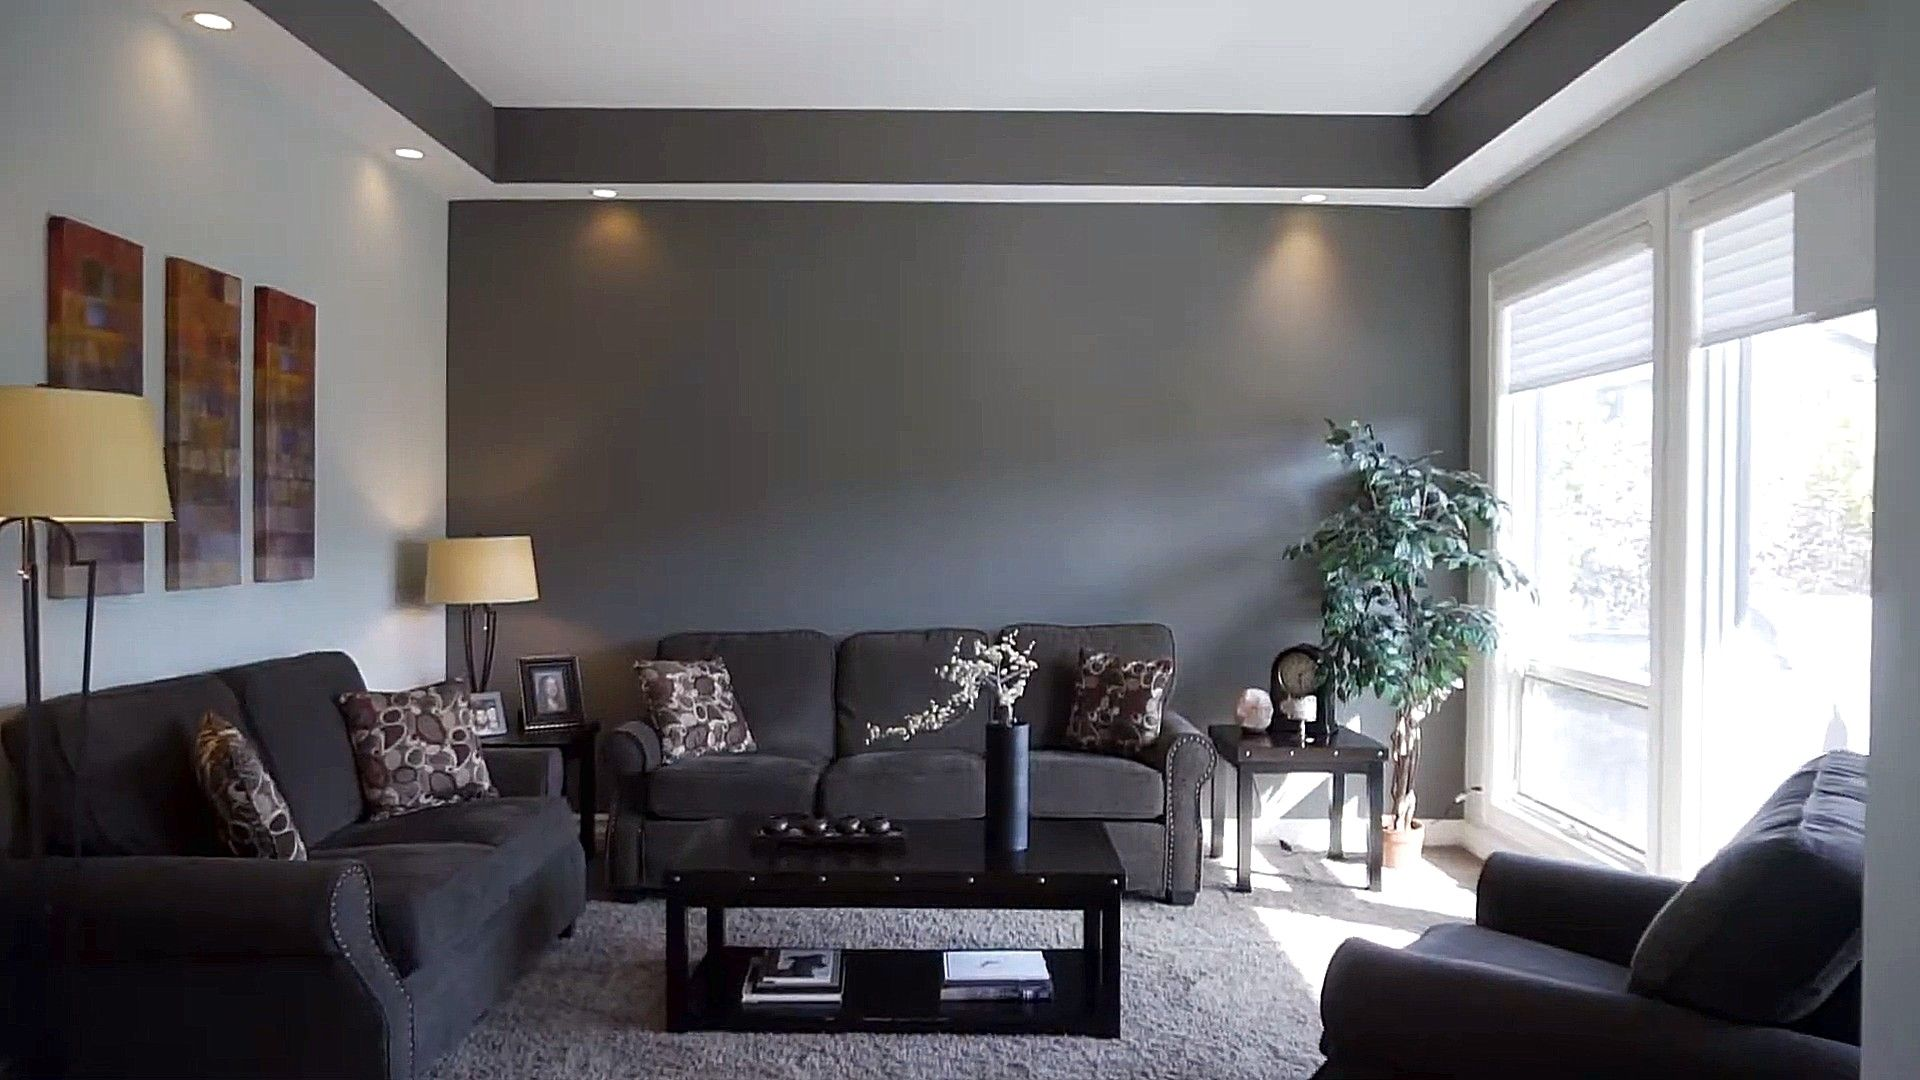 Beautiful Dark Gray And White Interior Wall Colour Combination Wall Color Combination Brown Living Room Decor Interior Wall Colors